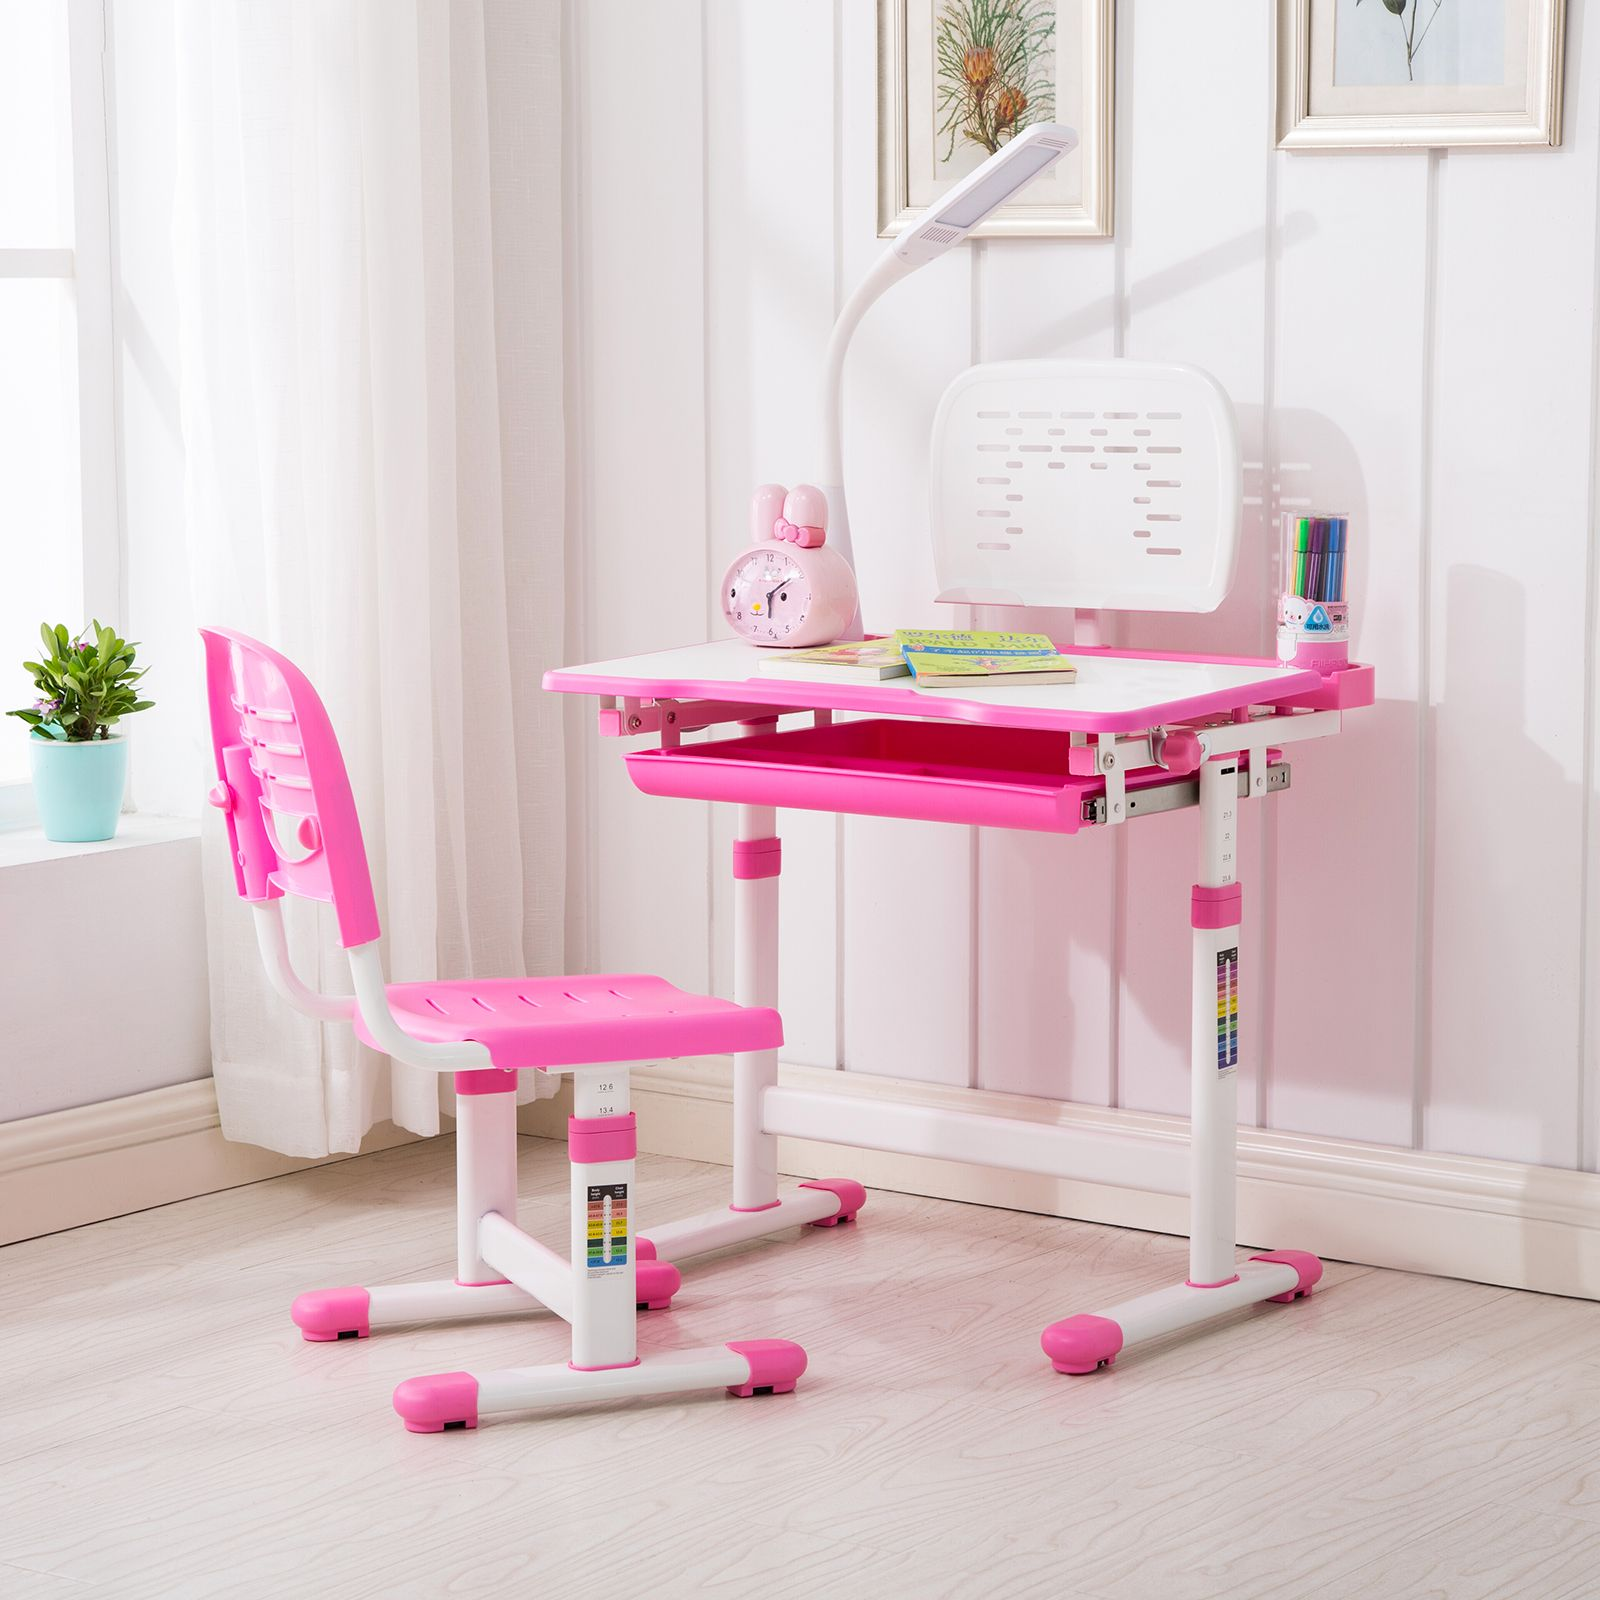 White Desk And Chair Set Desk And Chair Set White Desk Chair White Desks